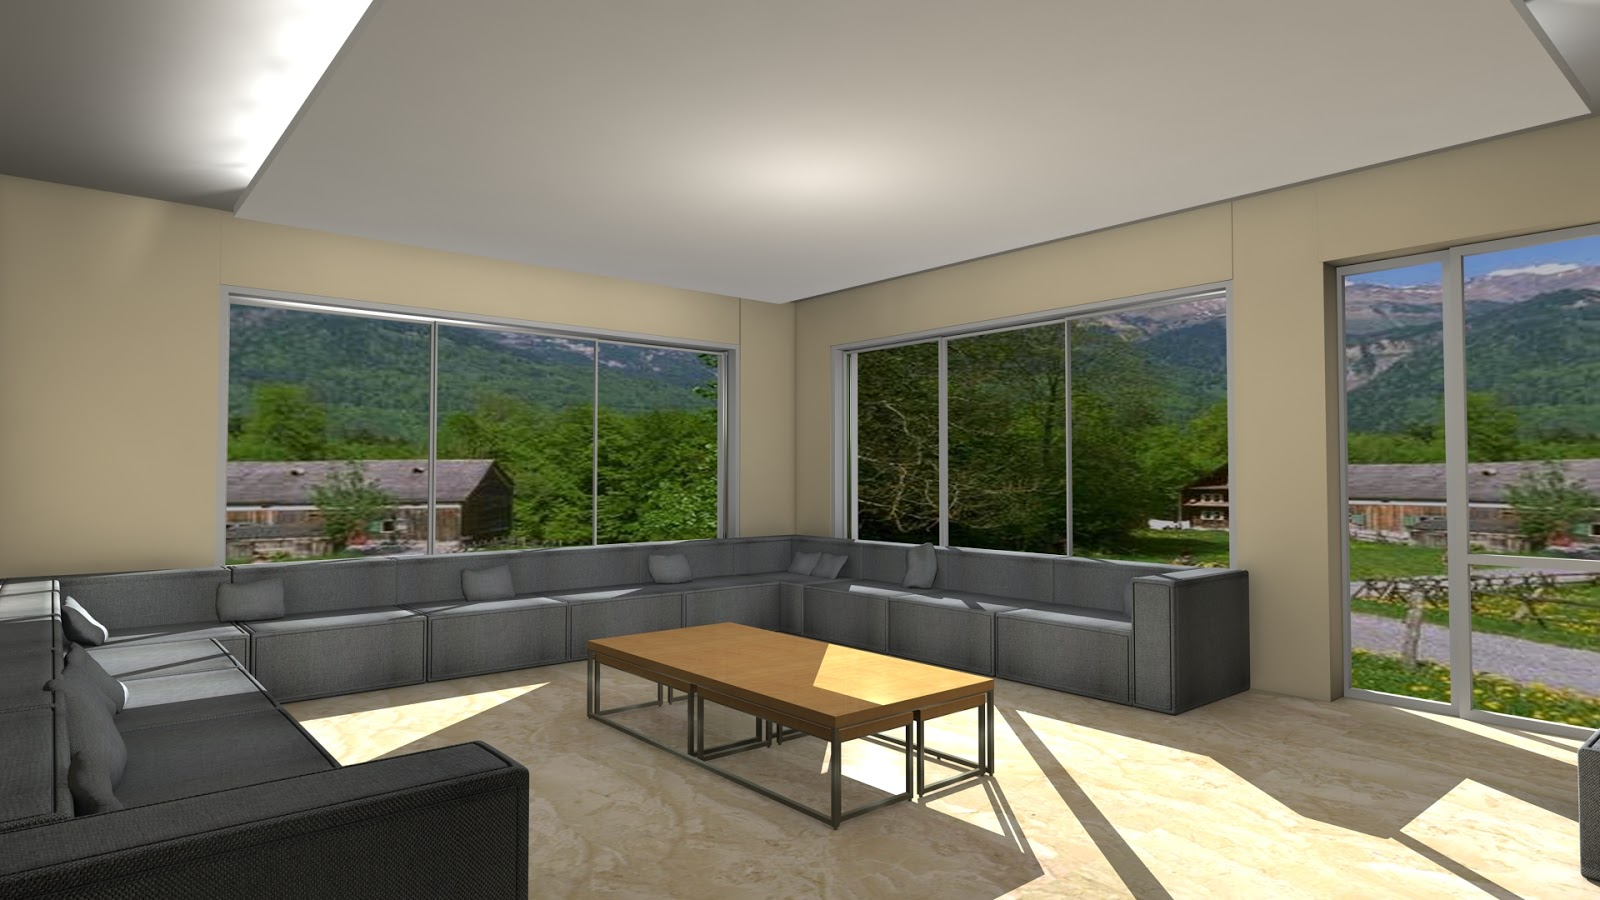 Sajid designs living room 3d model interior design 3ds max for 3d room design website